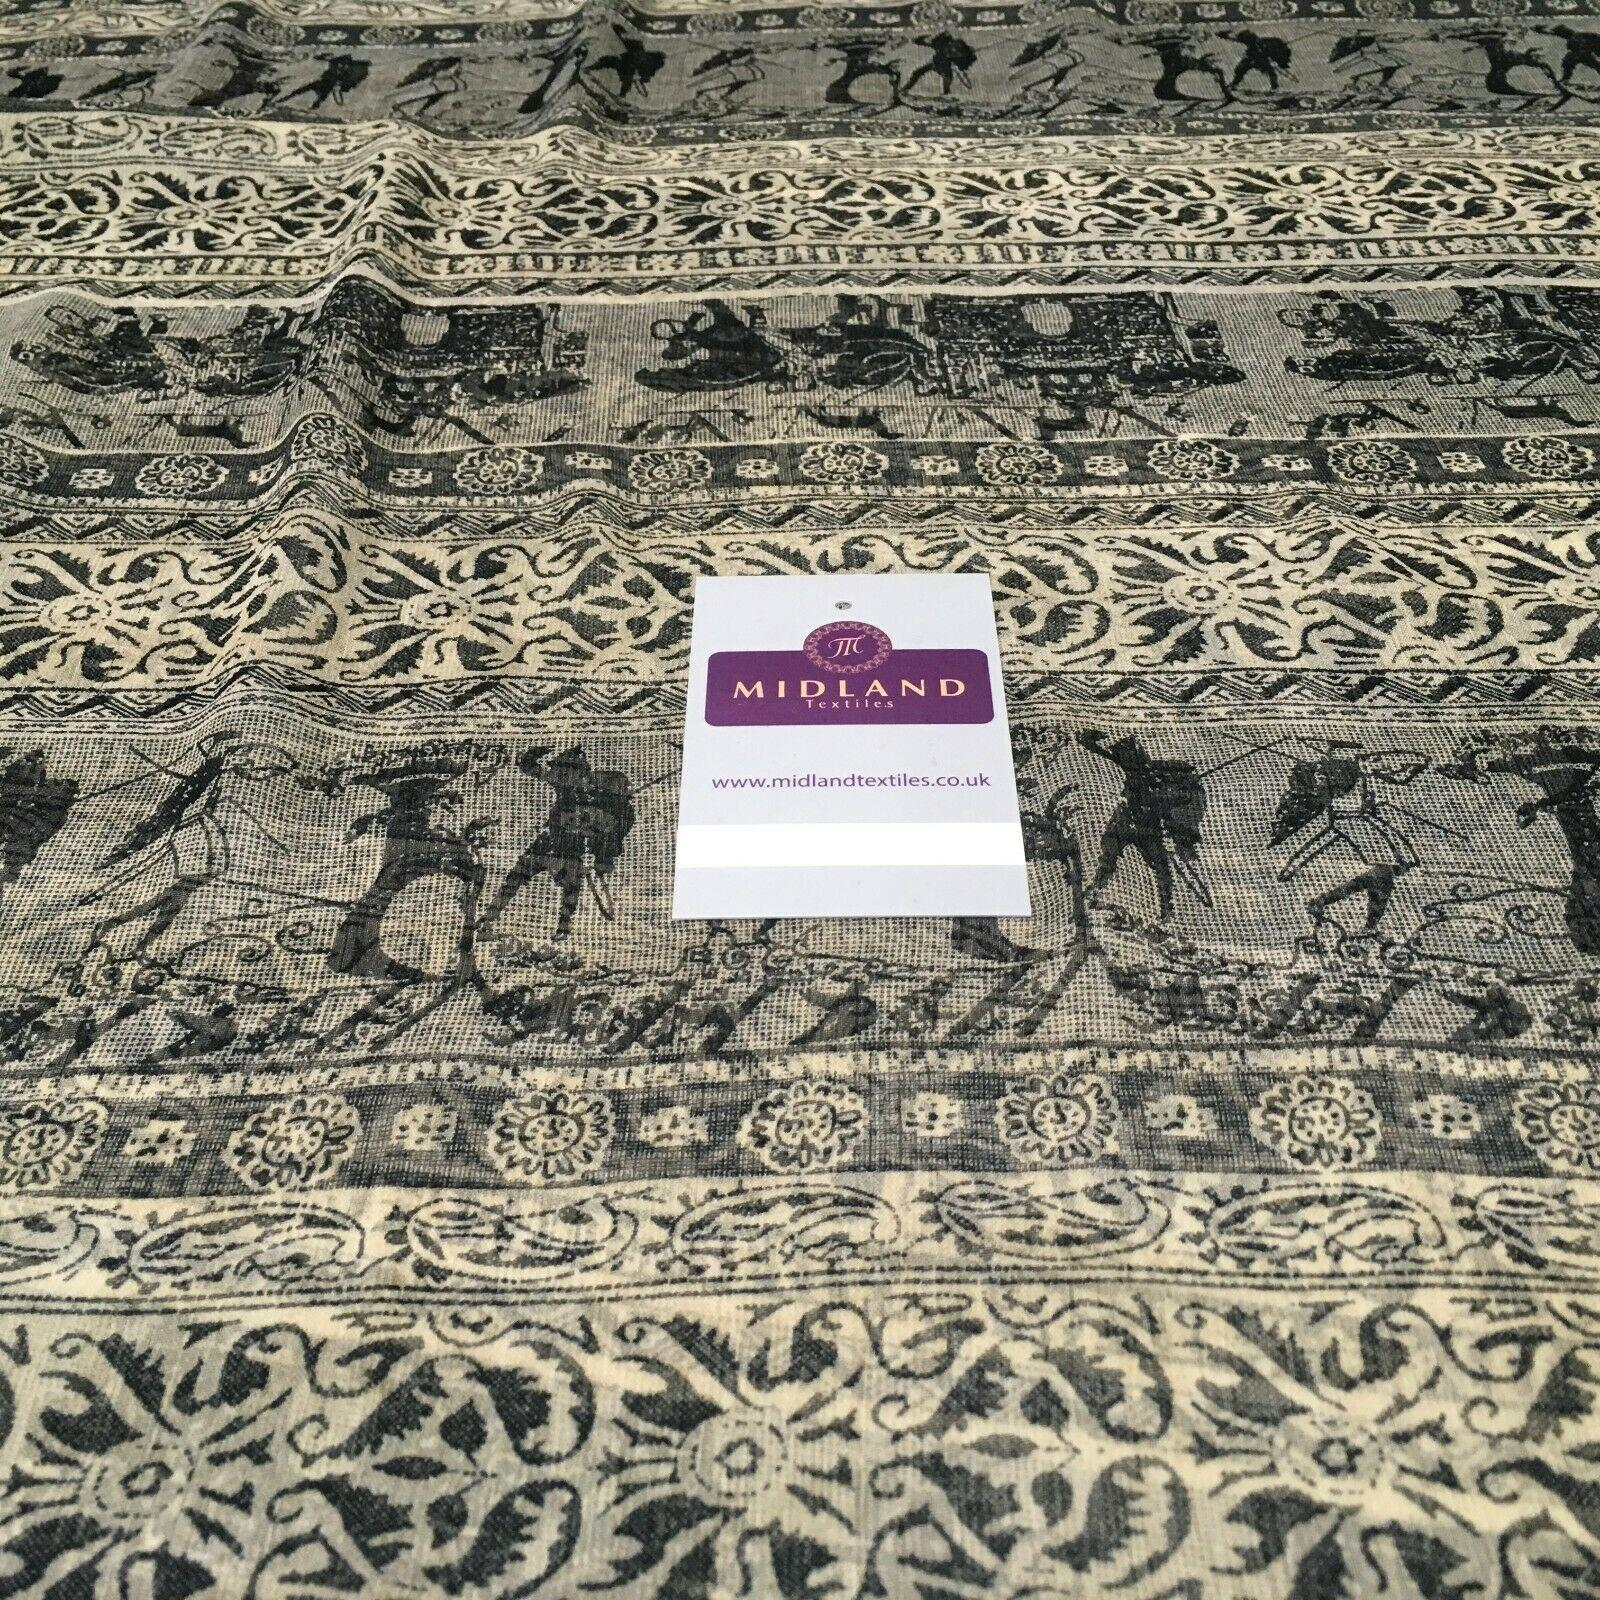 Stone Tribal printed Crinkle Georgette Chiffon fabric 150cm wide MK1090-20